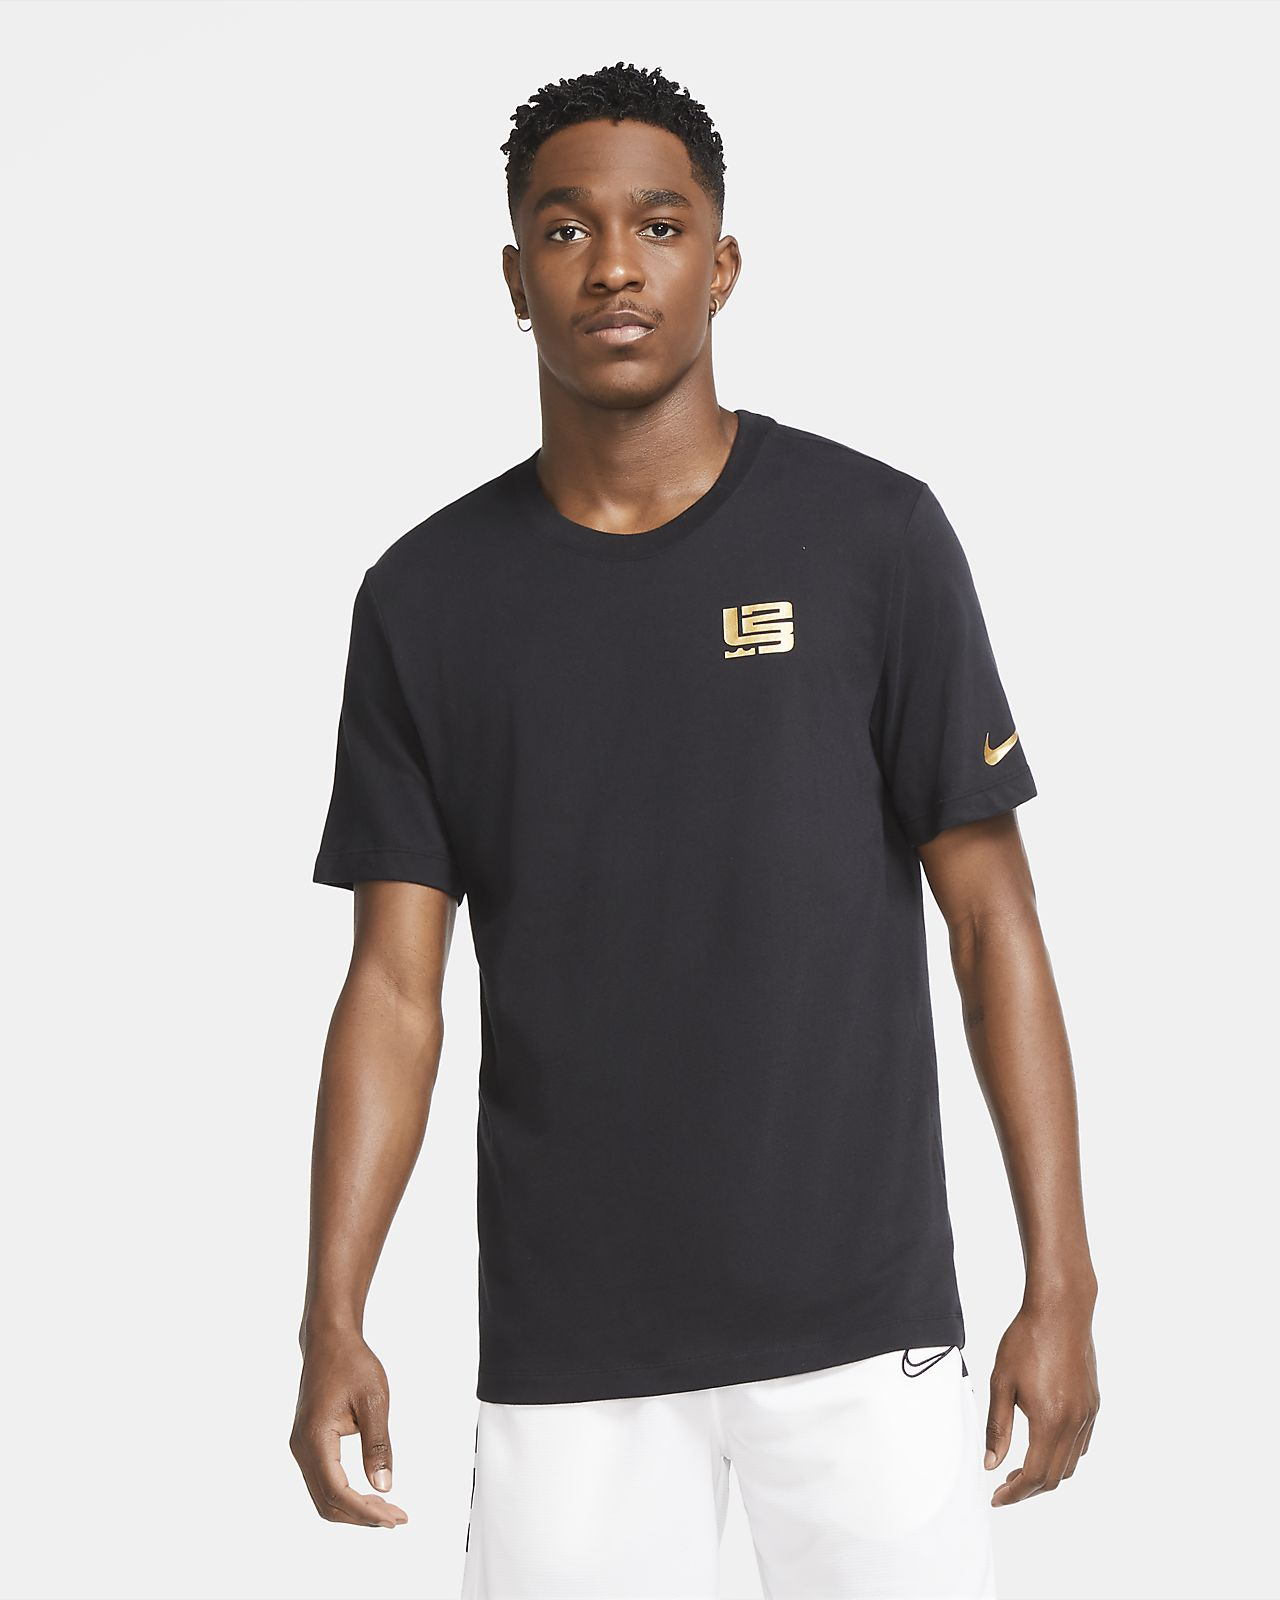 Tee-shirt de basketball Nike Dri-FIT LeBron « Strive for Greatness » pour Homme